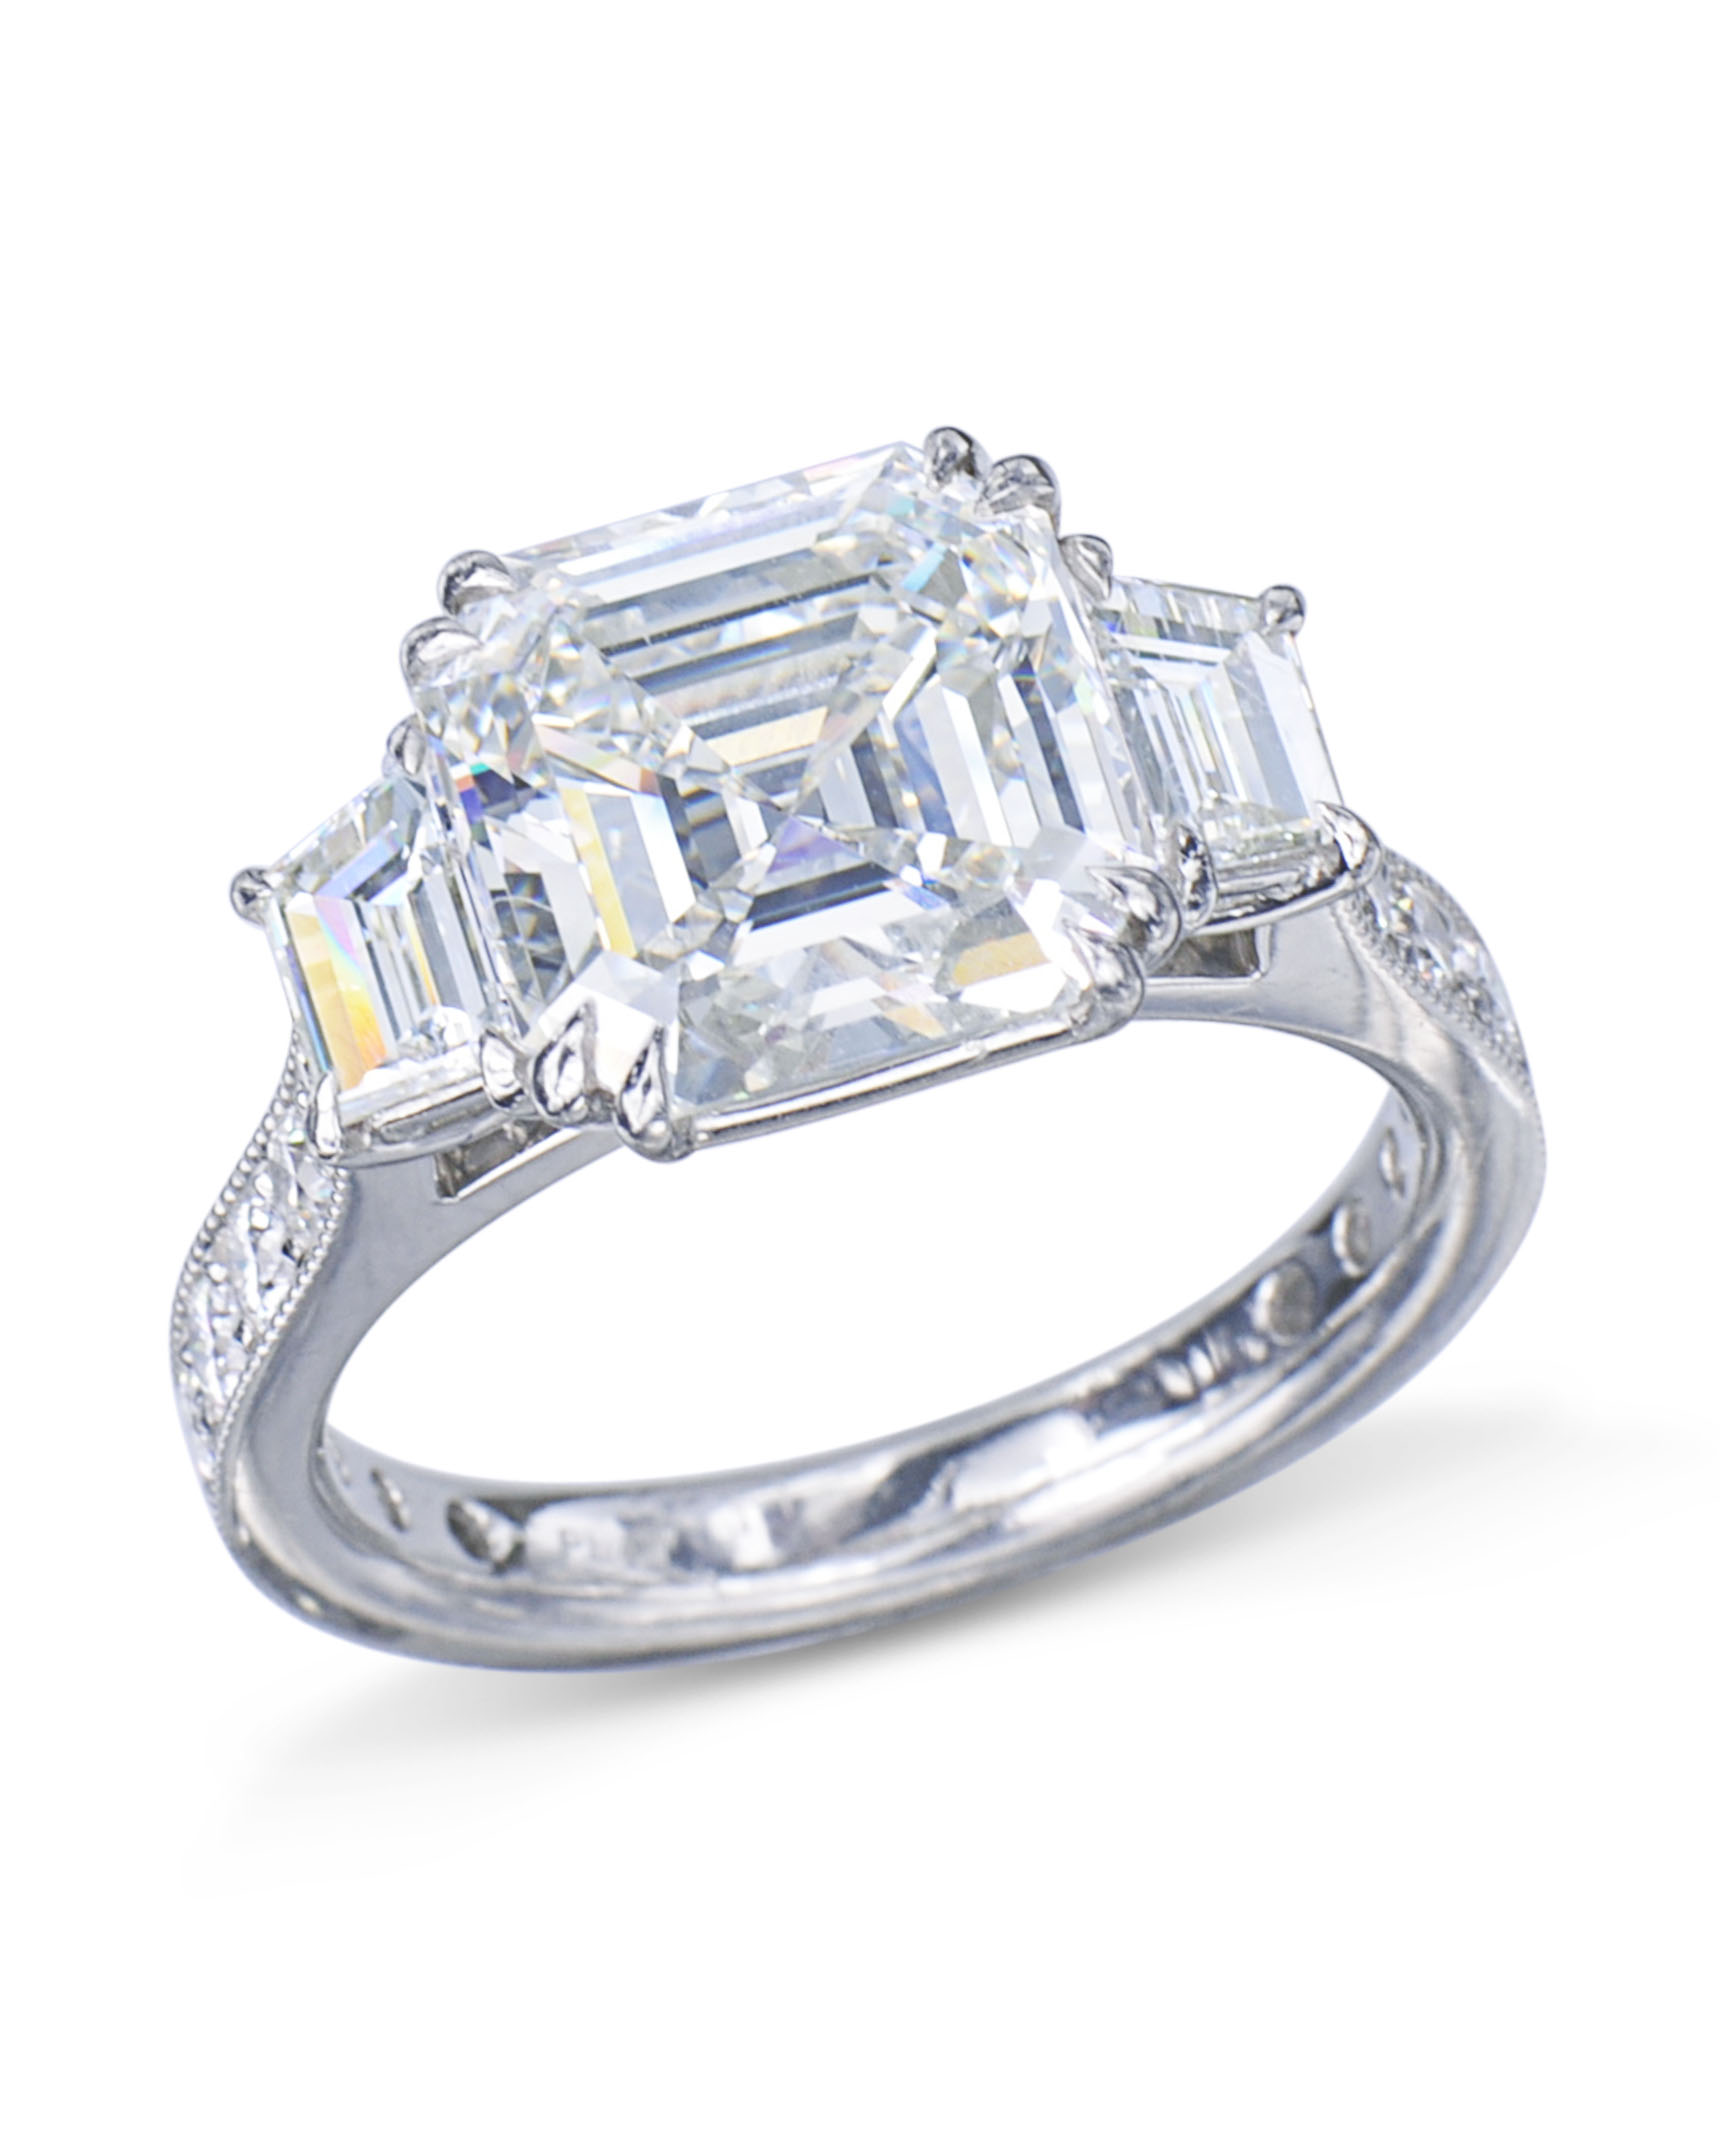 com gracelee diamond products asscher ring petite stacker asher